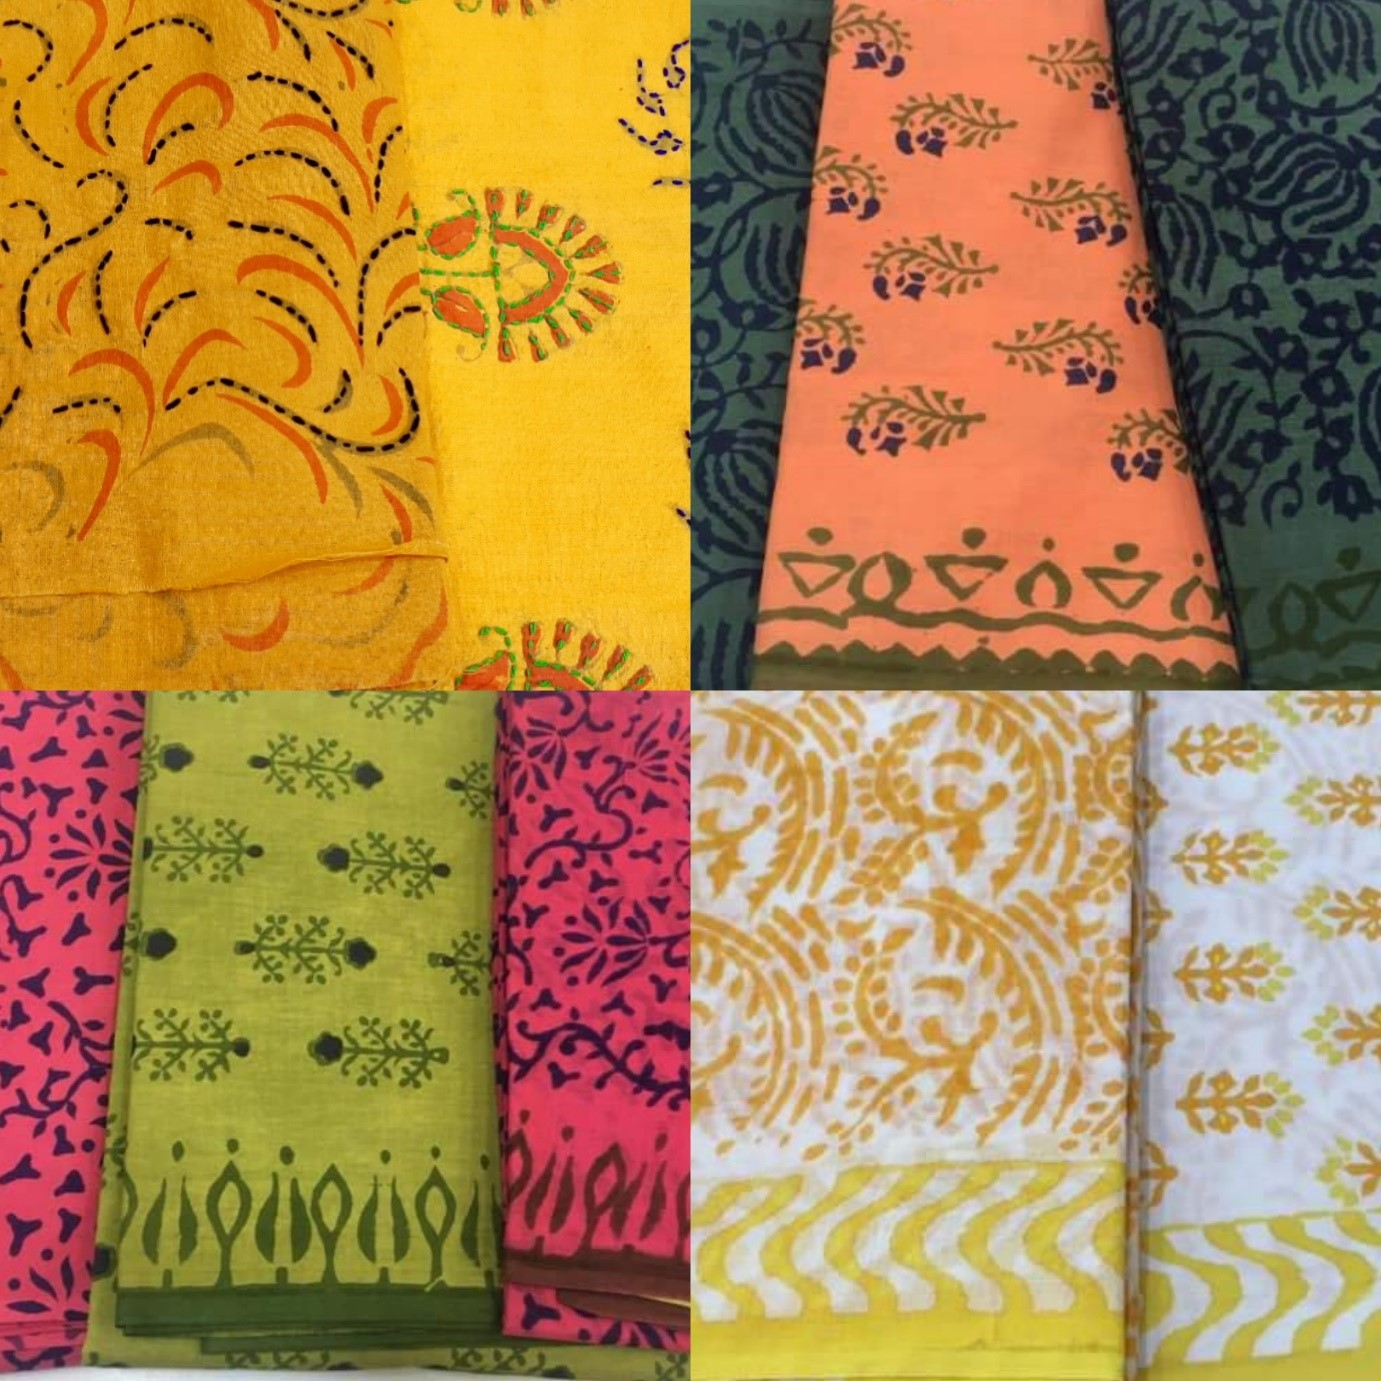 Baroda prints, dress material, dresses, printed dress material, cotton dress material, vadodara,yellow,